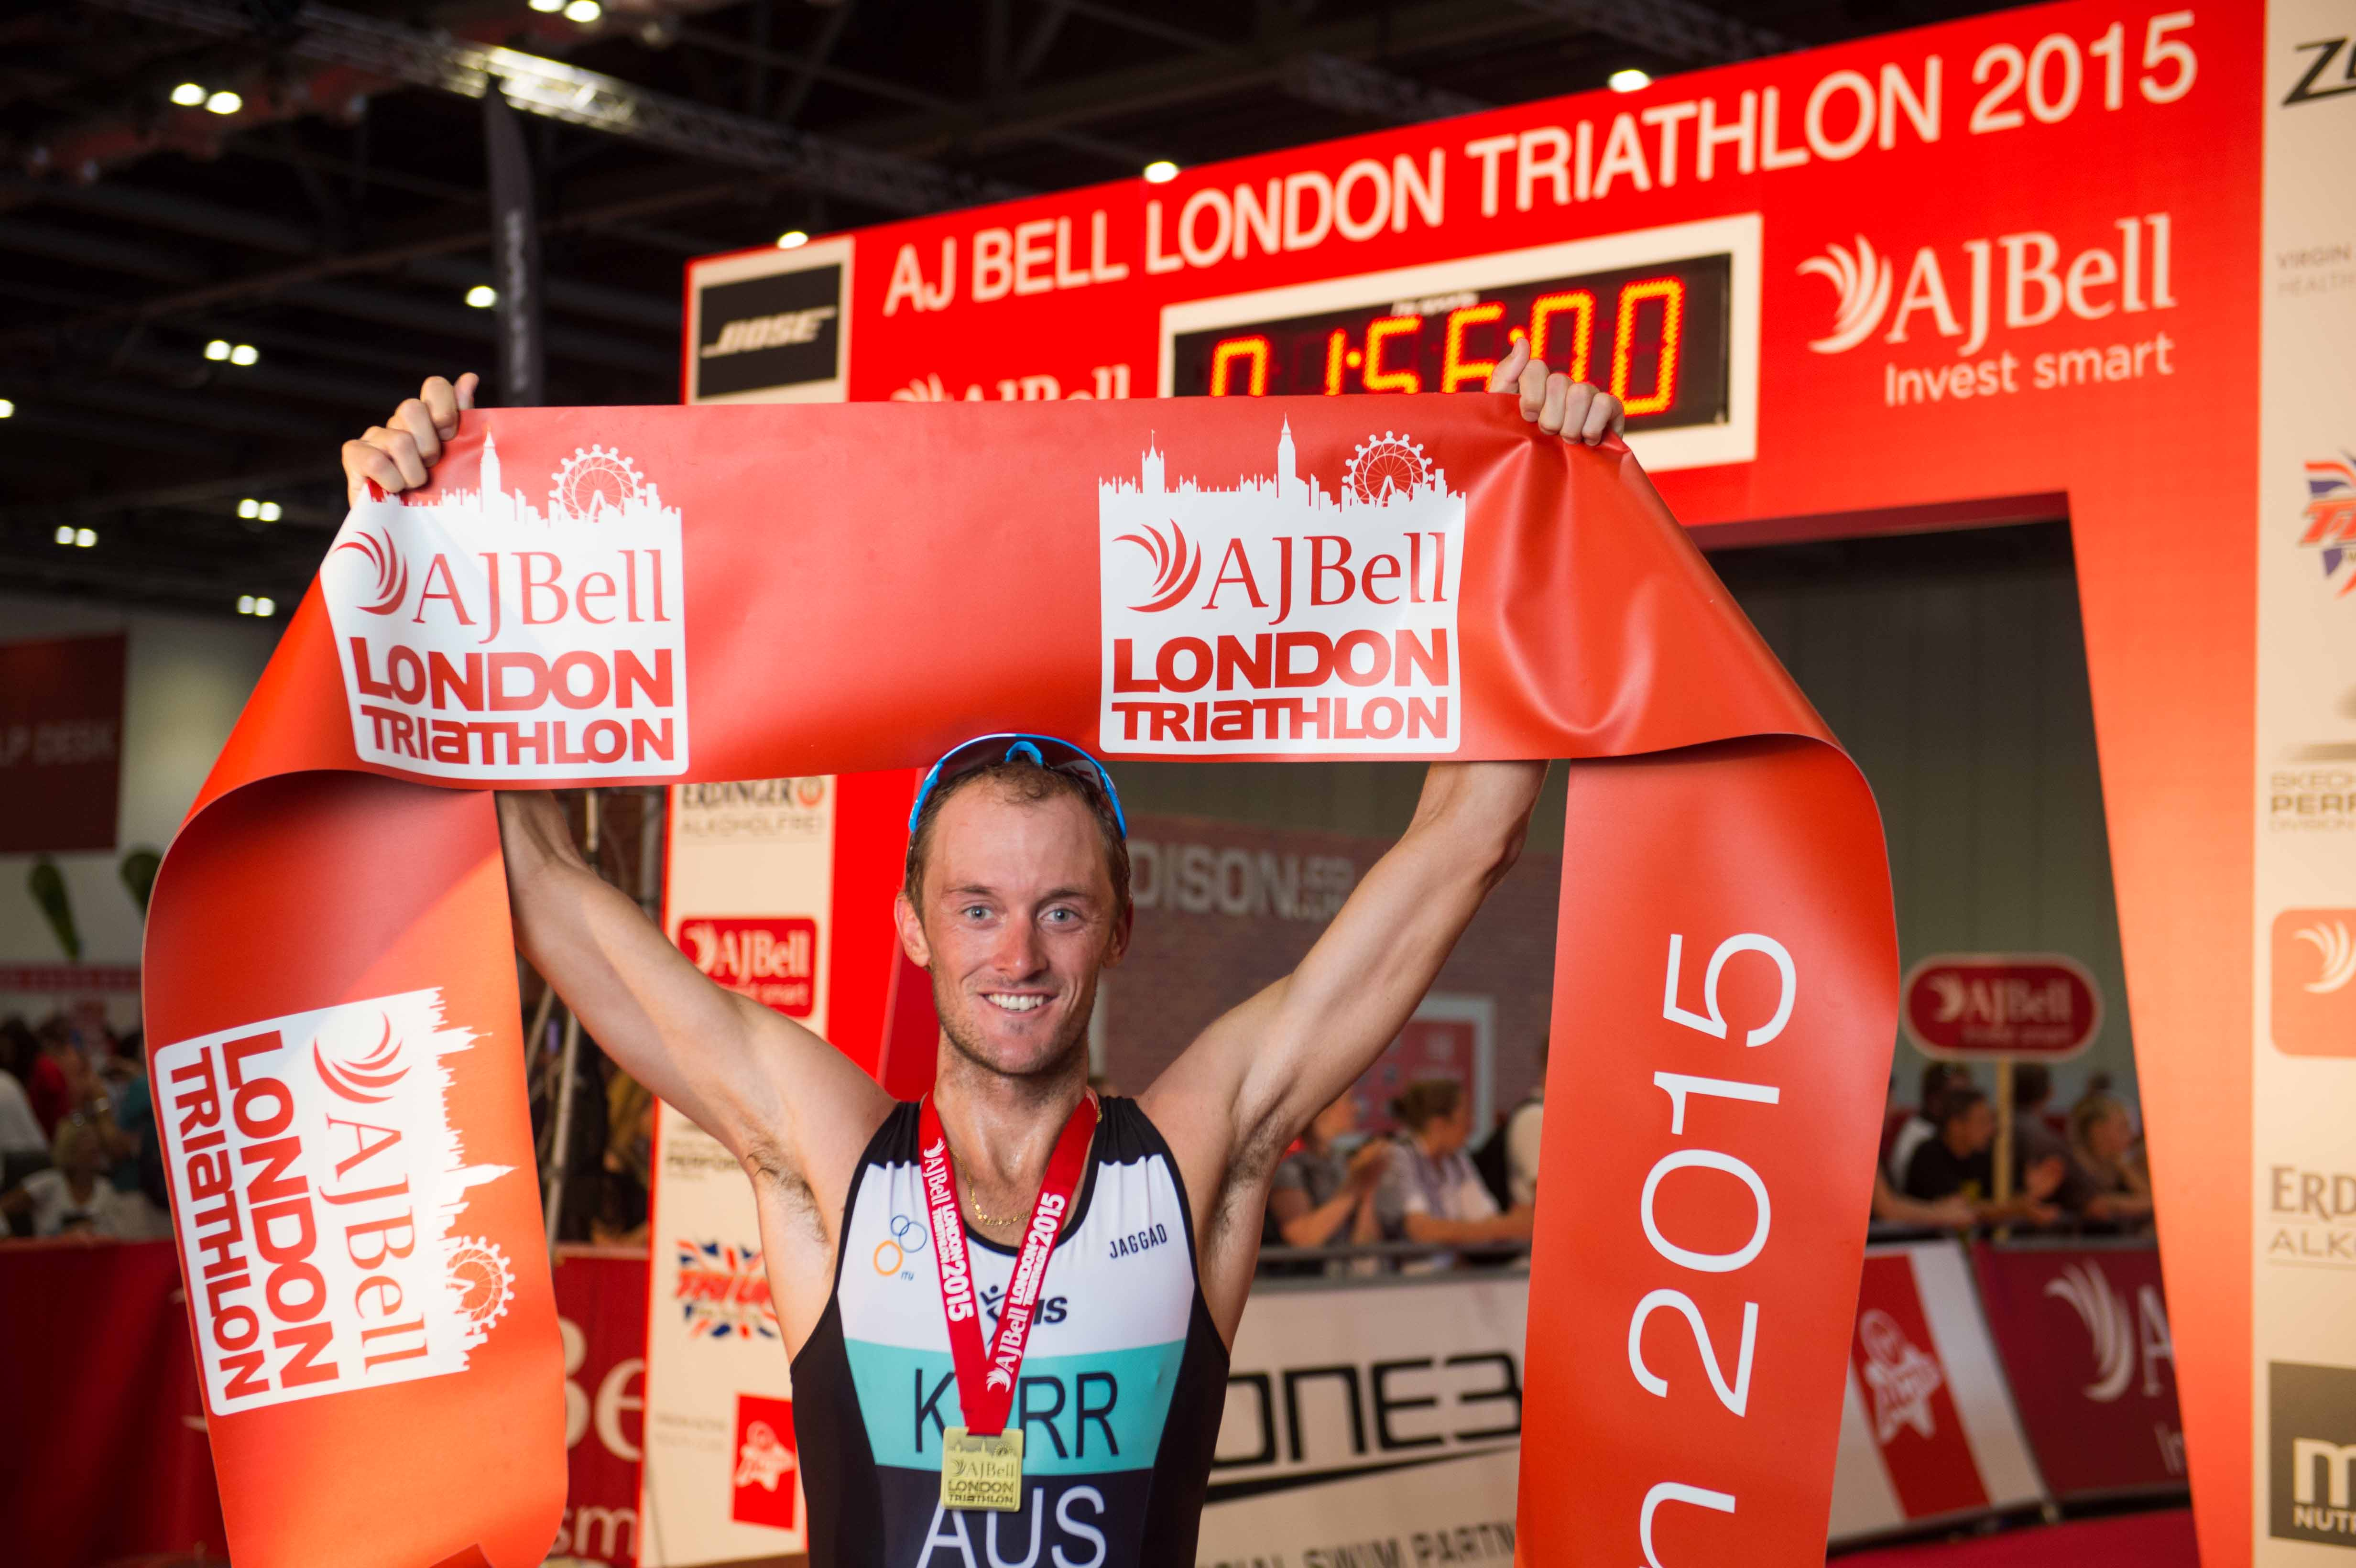 HELEN JENKINS & PETER KERR STORM TO VICTORY AT THE AJ BELL LONDON TRIATHLON